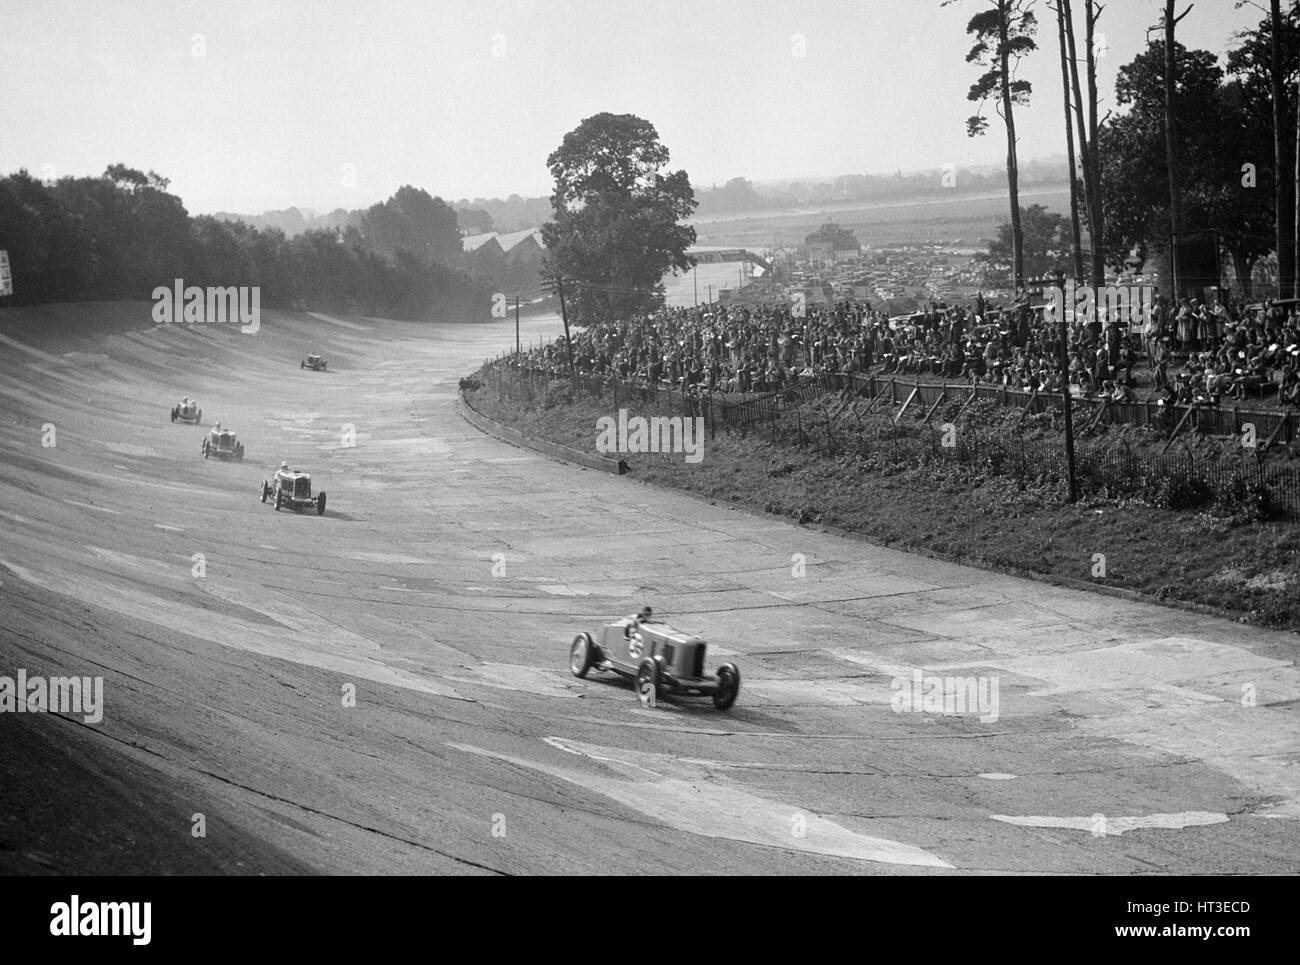 Talbot 90 on the banking at Brooklands, 1930s. Artist: Bill Brunell. - Stock Image